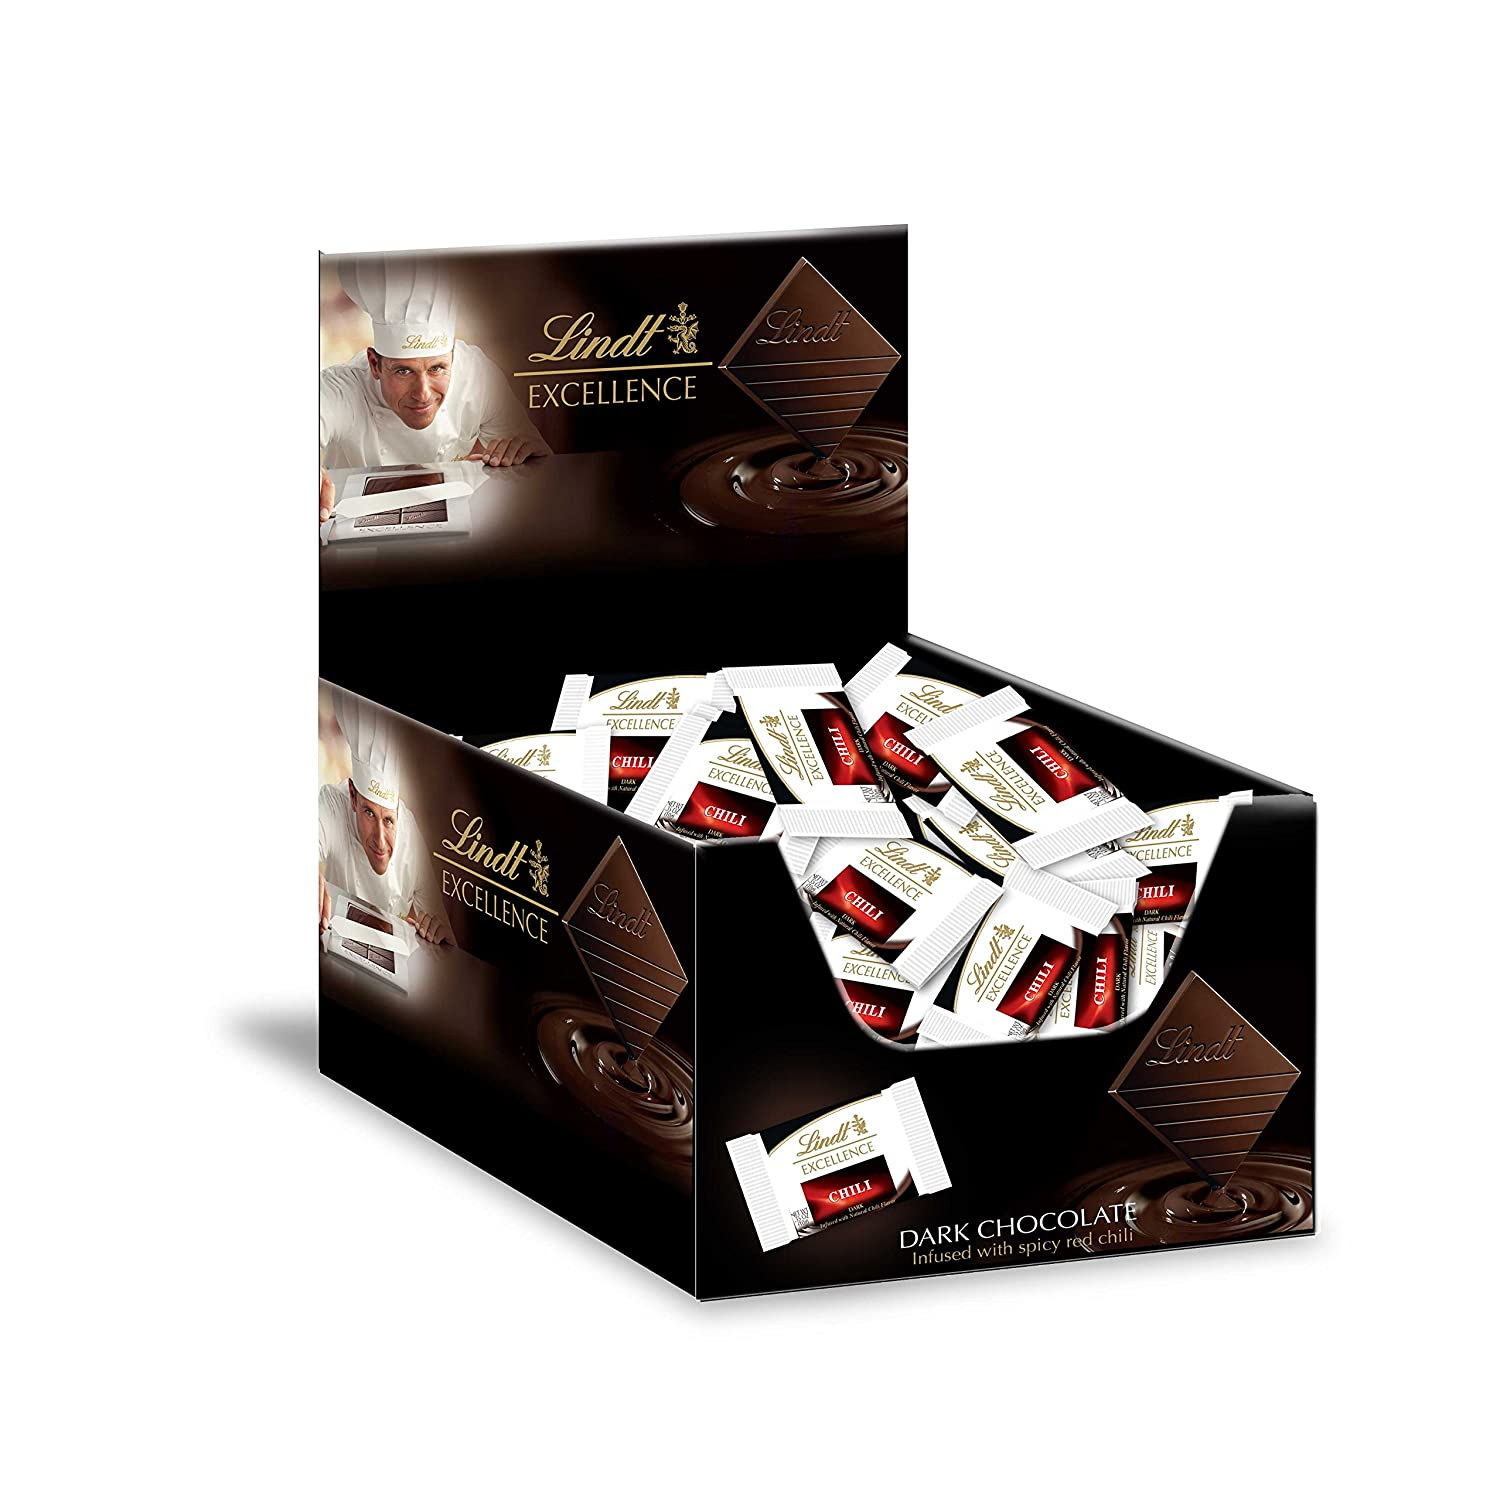 Amazon.com : Lindt EXCELLENCE 70% Cocoa Chocolate Diamonds 60ct ...